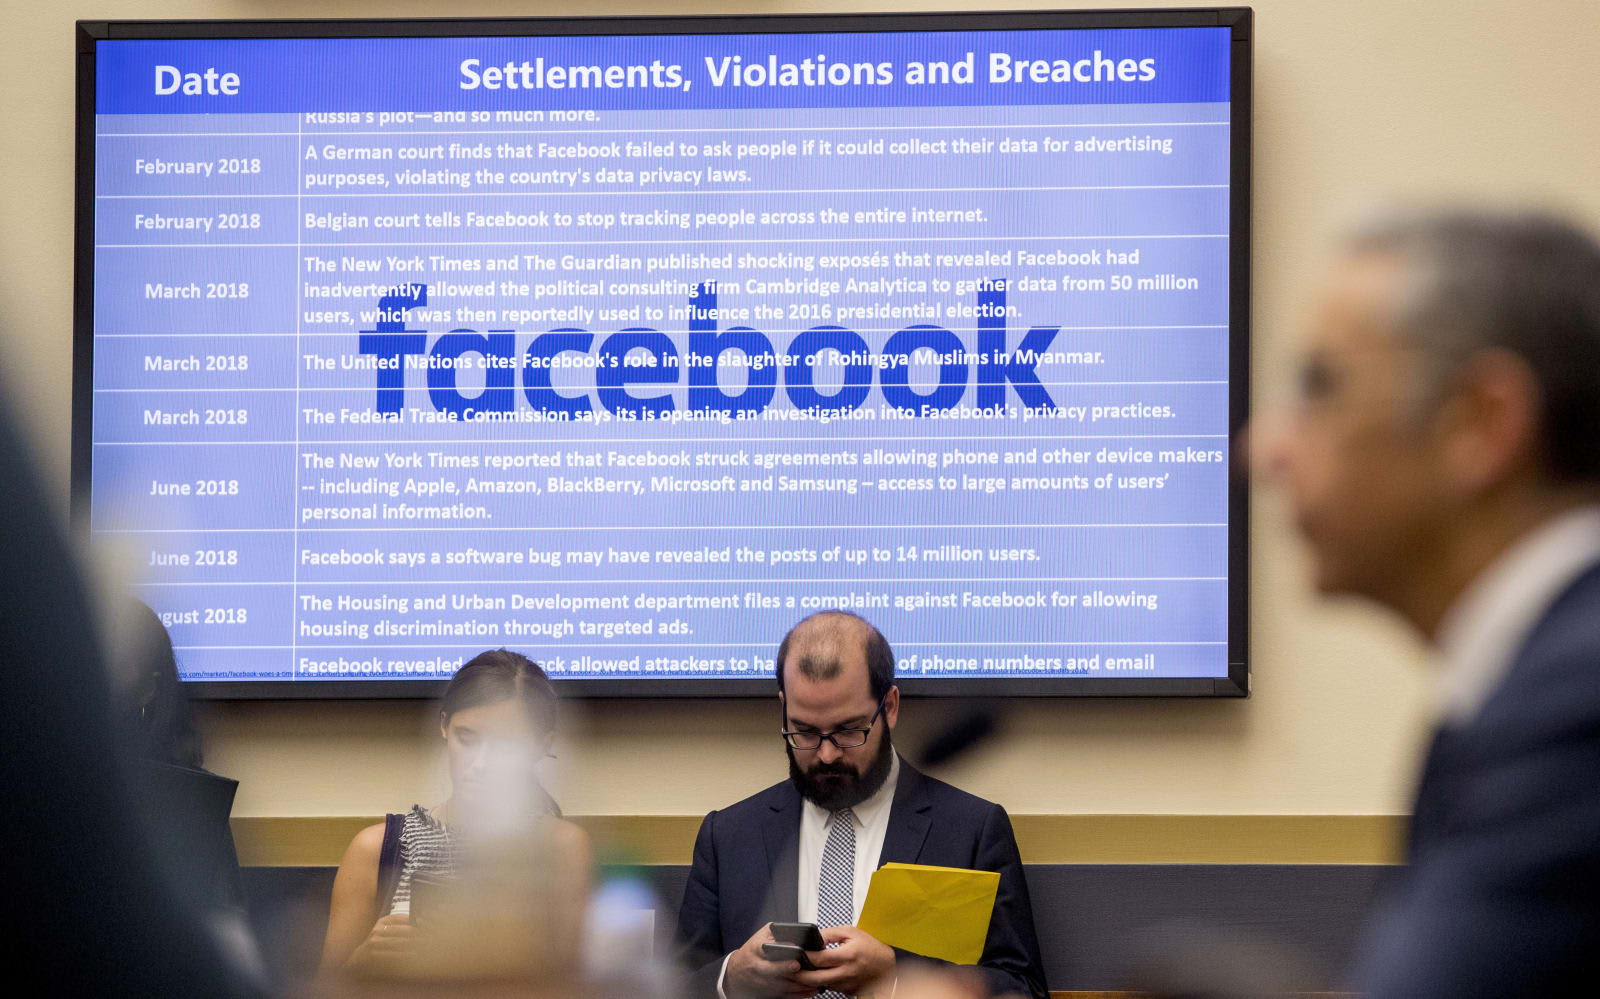 Facebook's Libra Association is being investigated by EU antitrust regulators